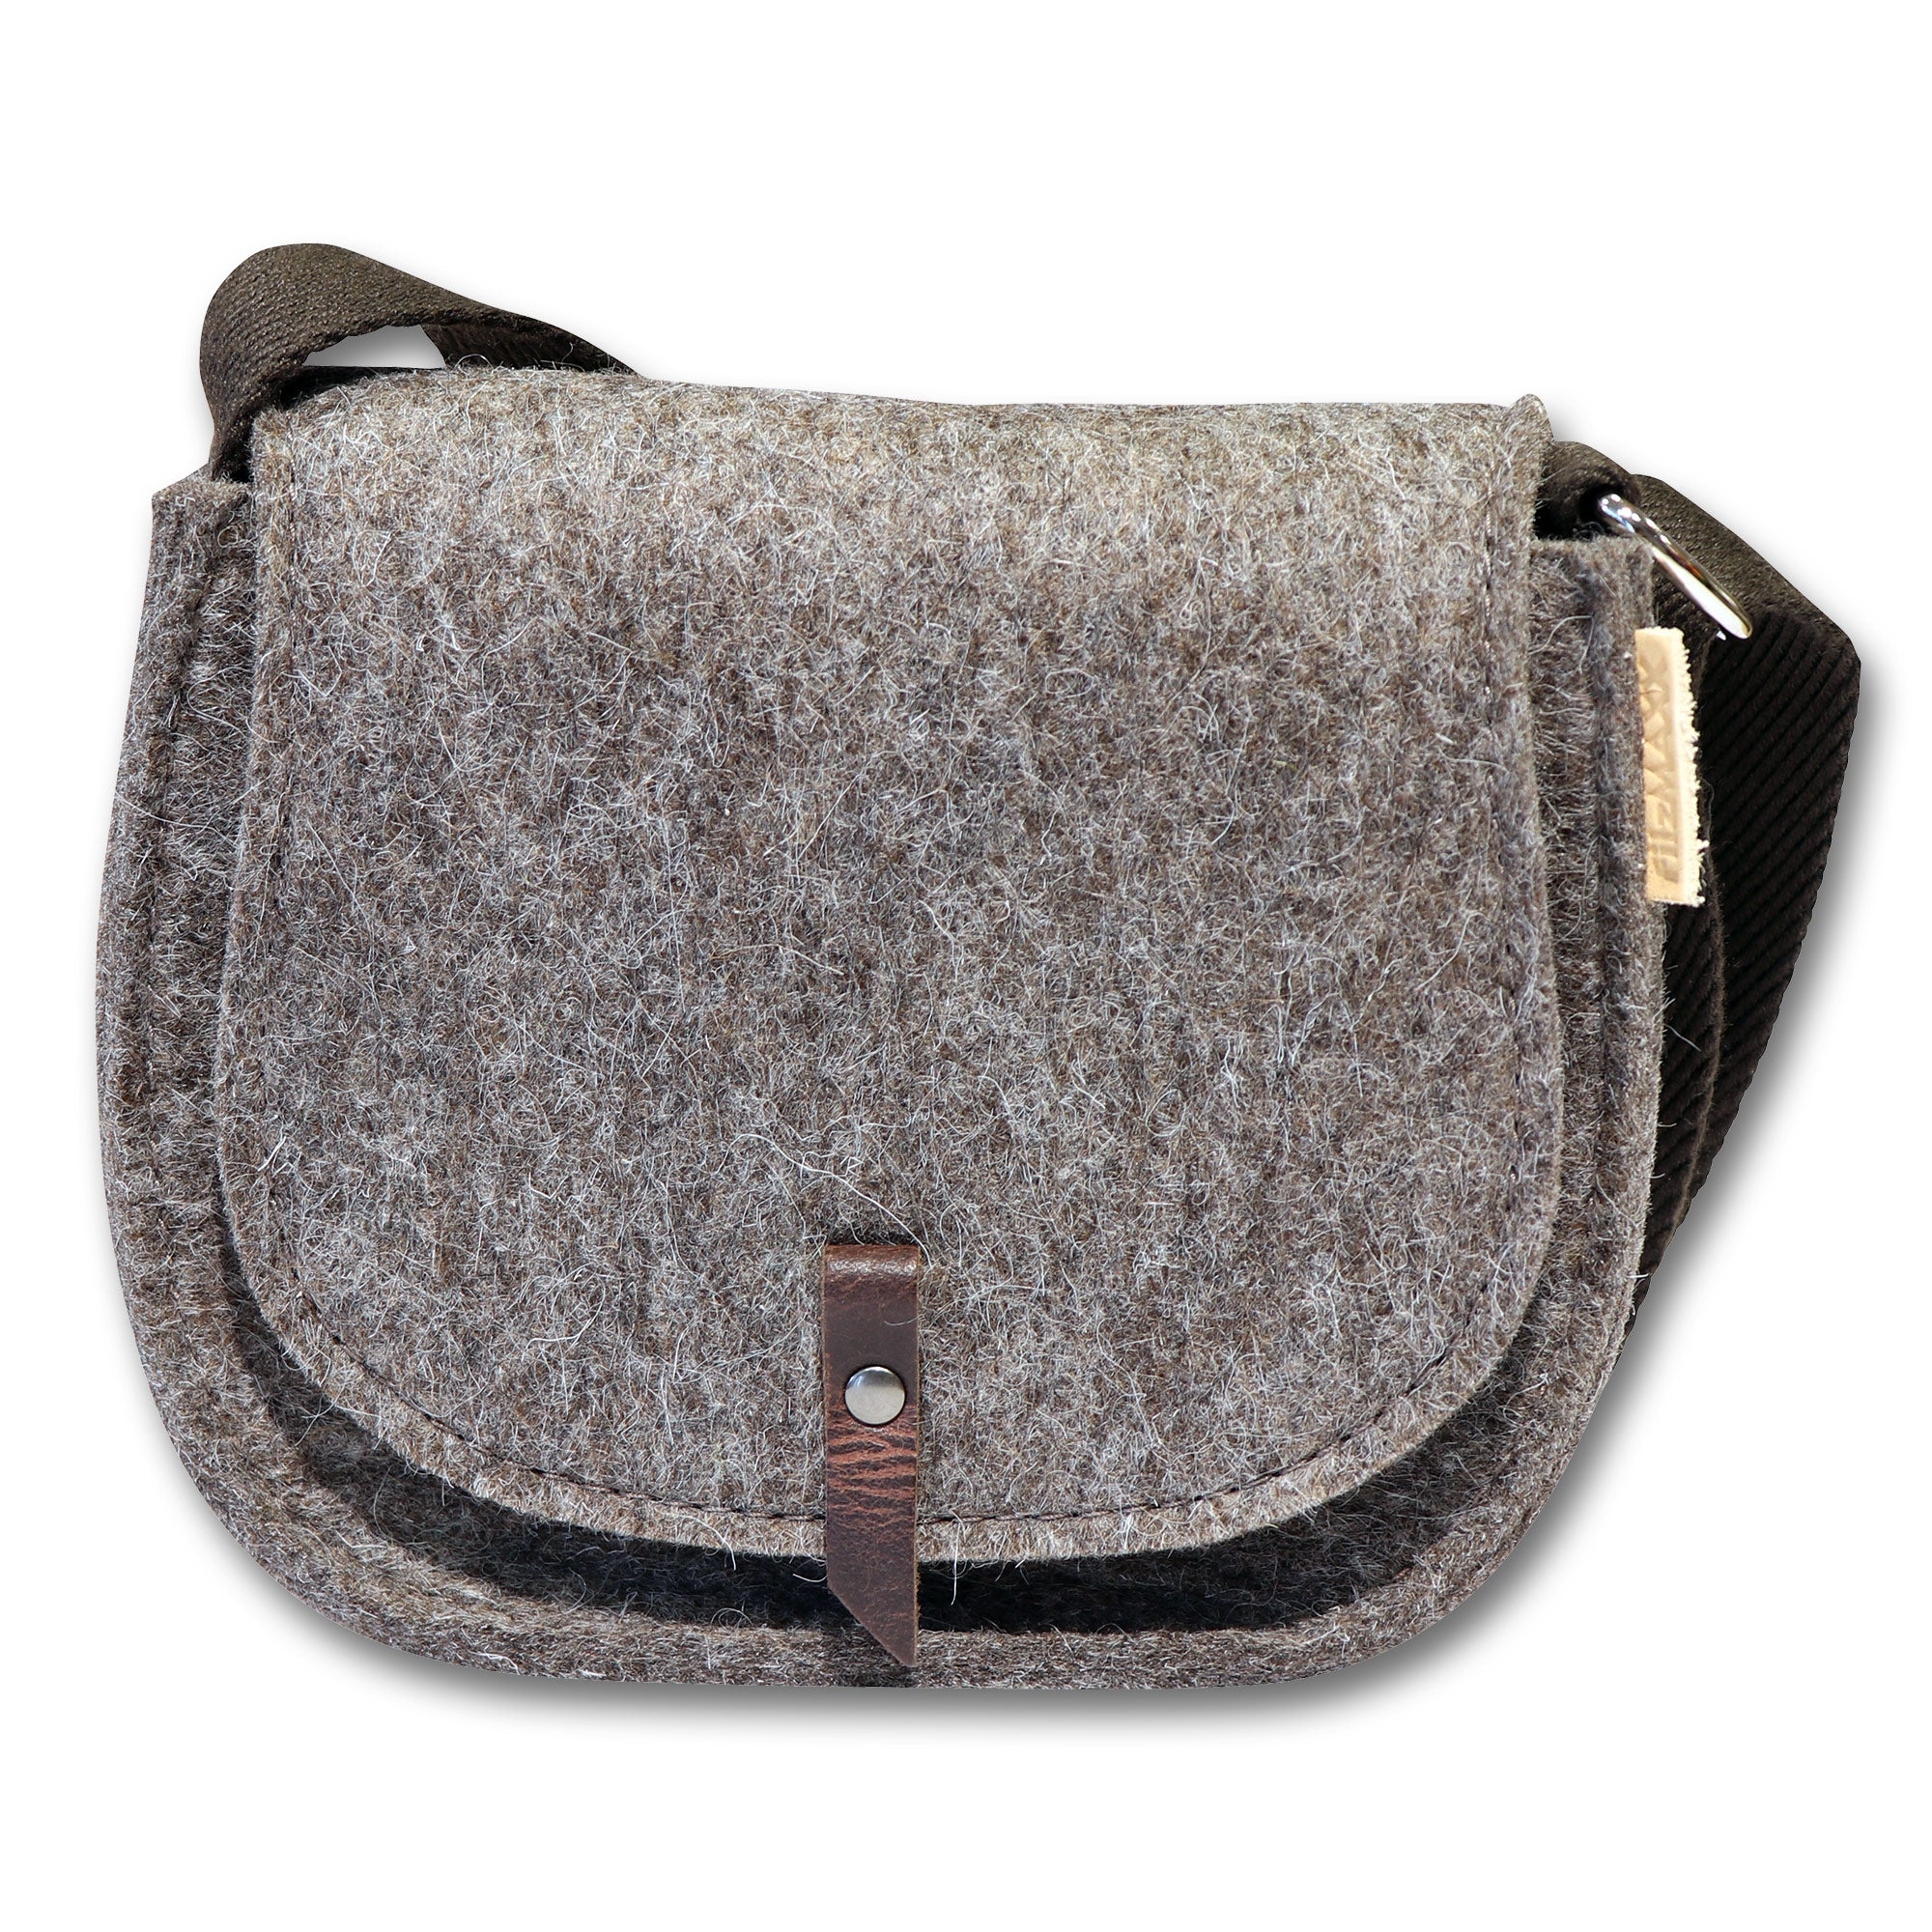 SADDLE BAG GINA